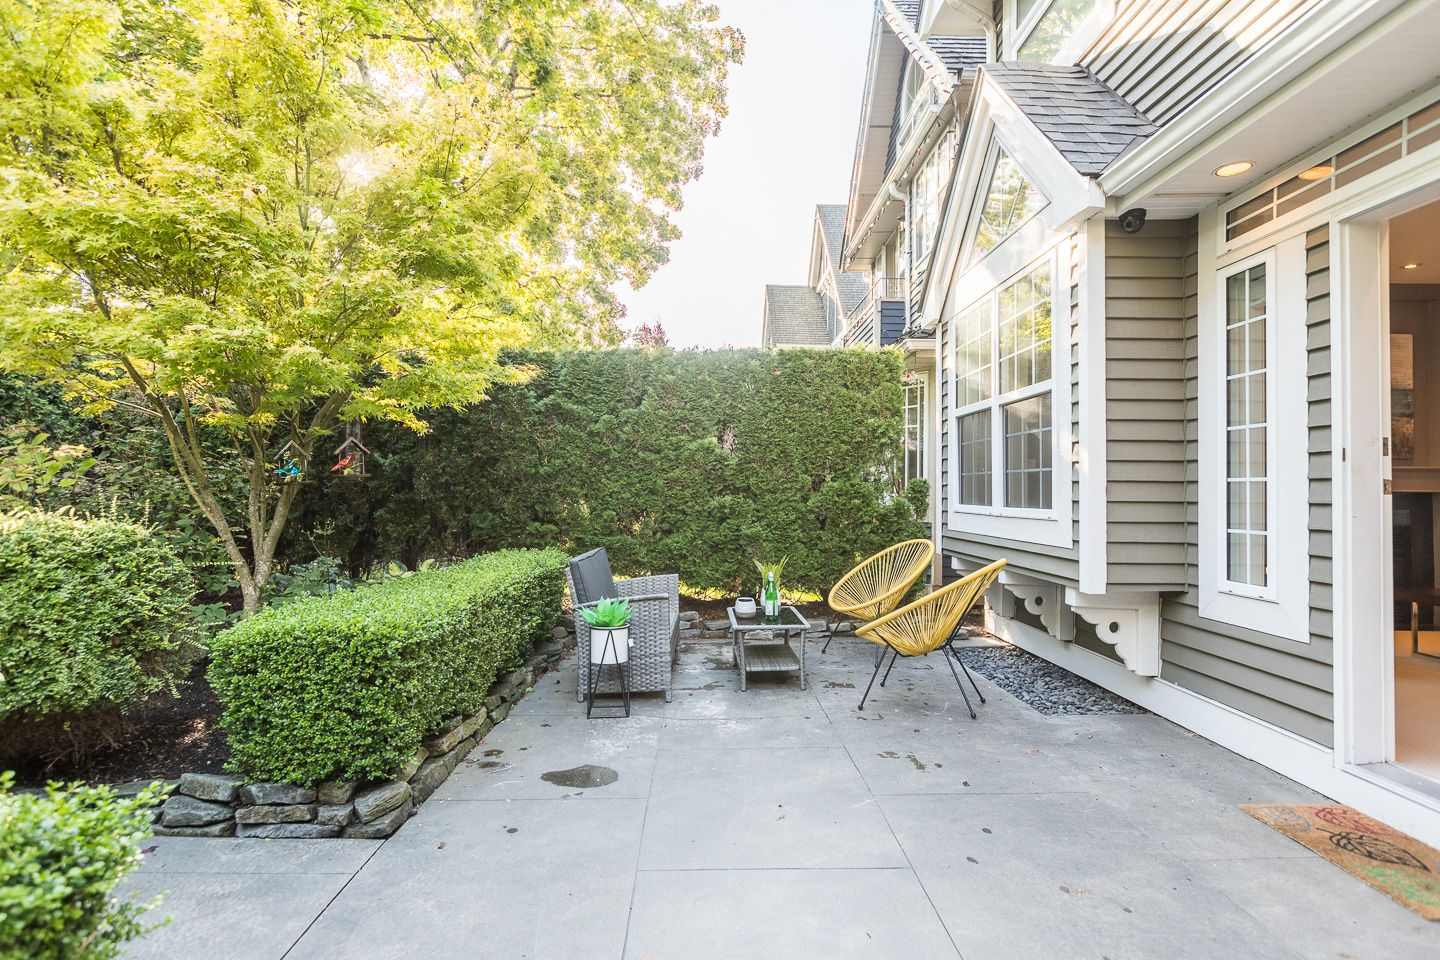 Photo 4: Photos: 2267 WEST 13TH AV in VANCOUVER: Kitsilano 1/2 Duplex for sale (Vancouver West)  : MLS®# R2407976